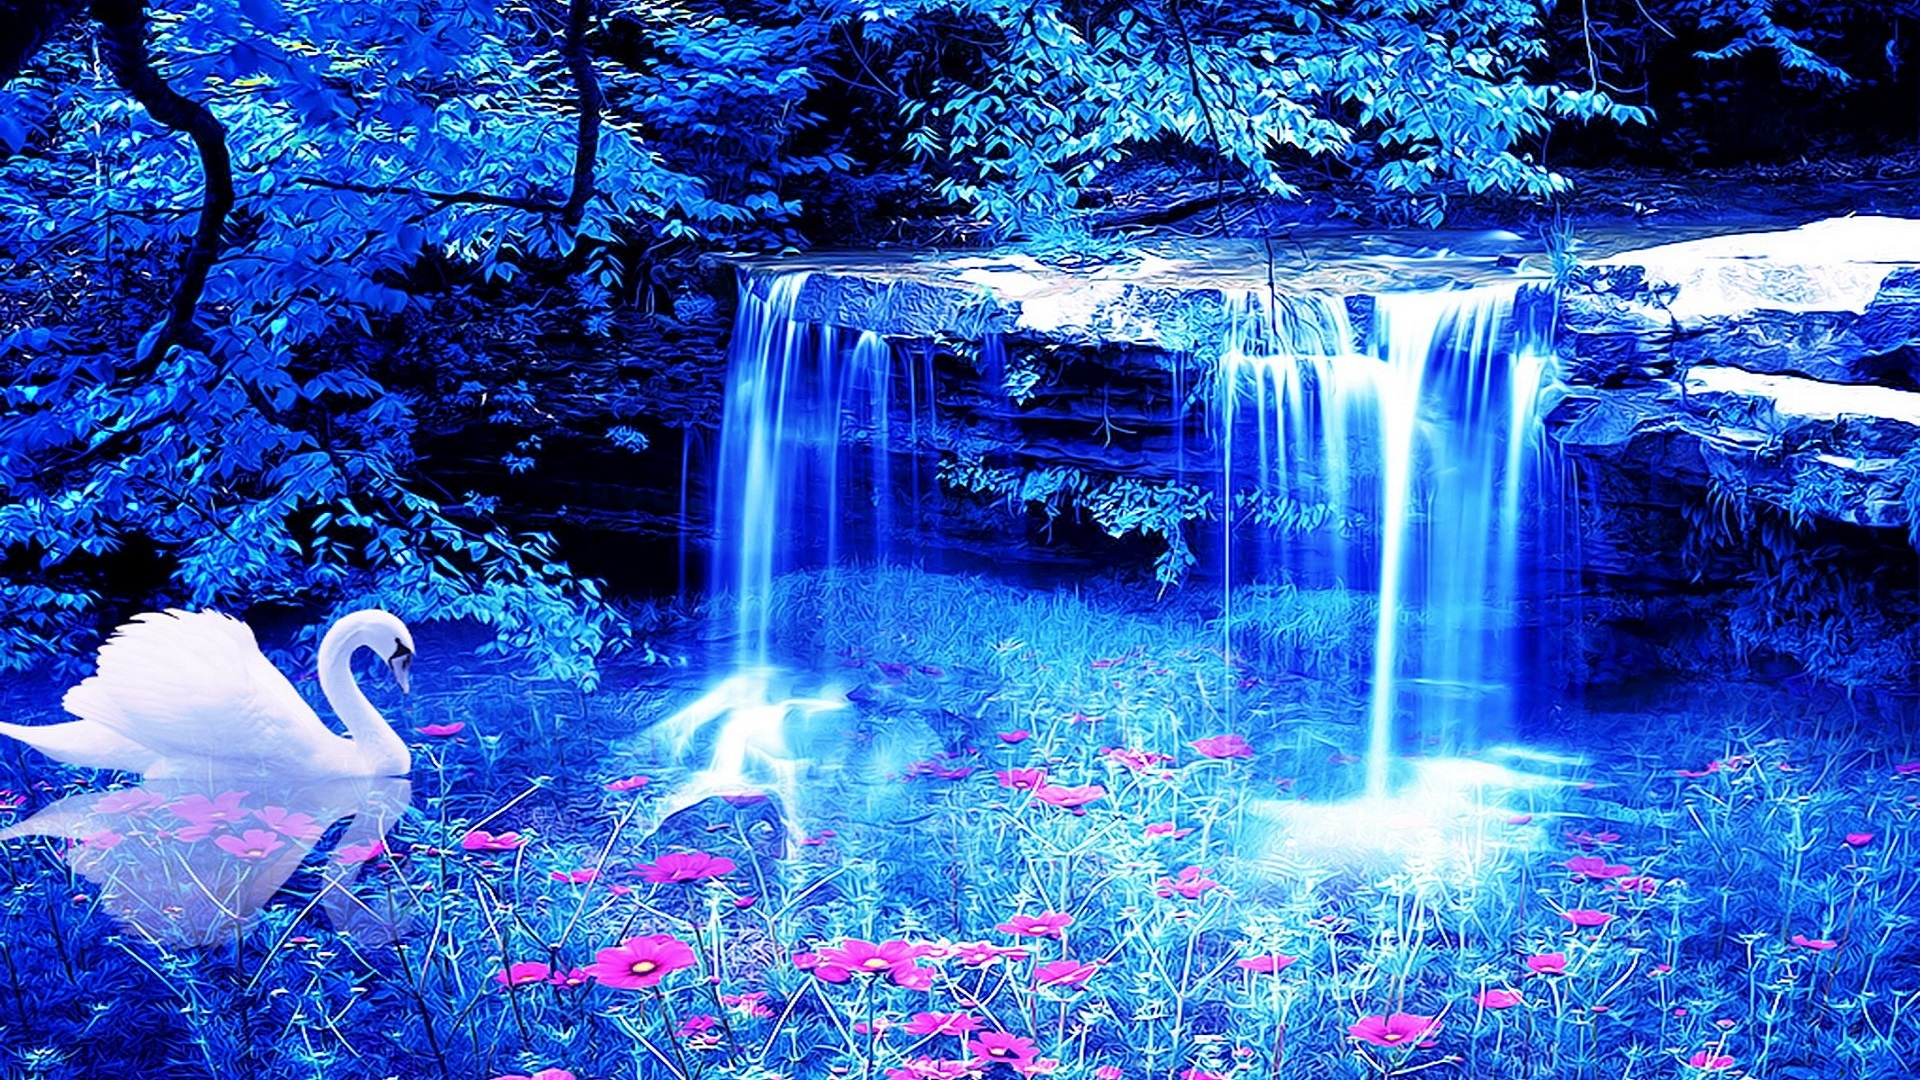 Must see Wallpaper Desktop Background Waterfall - beautiful-waterfalls-hd-wallpaper-background-free-for-desktop  Pic_934765 .jpg